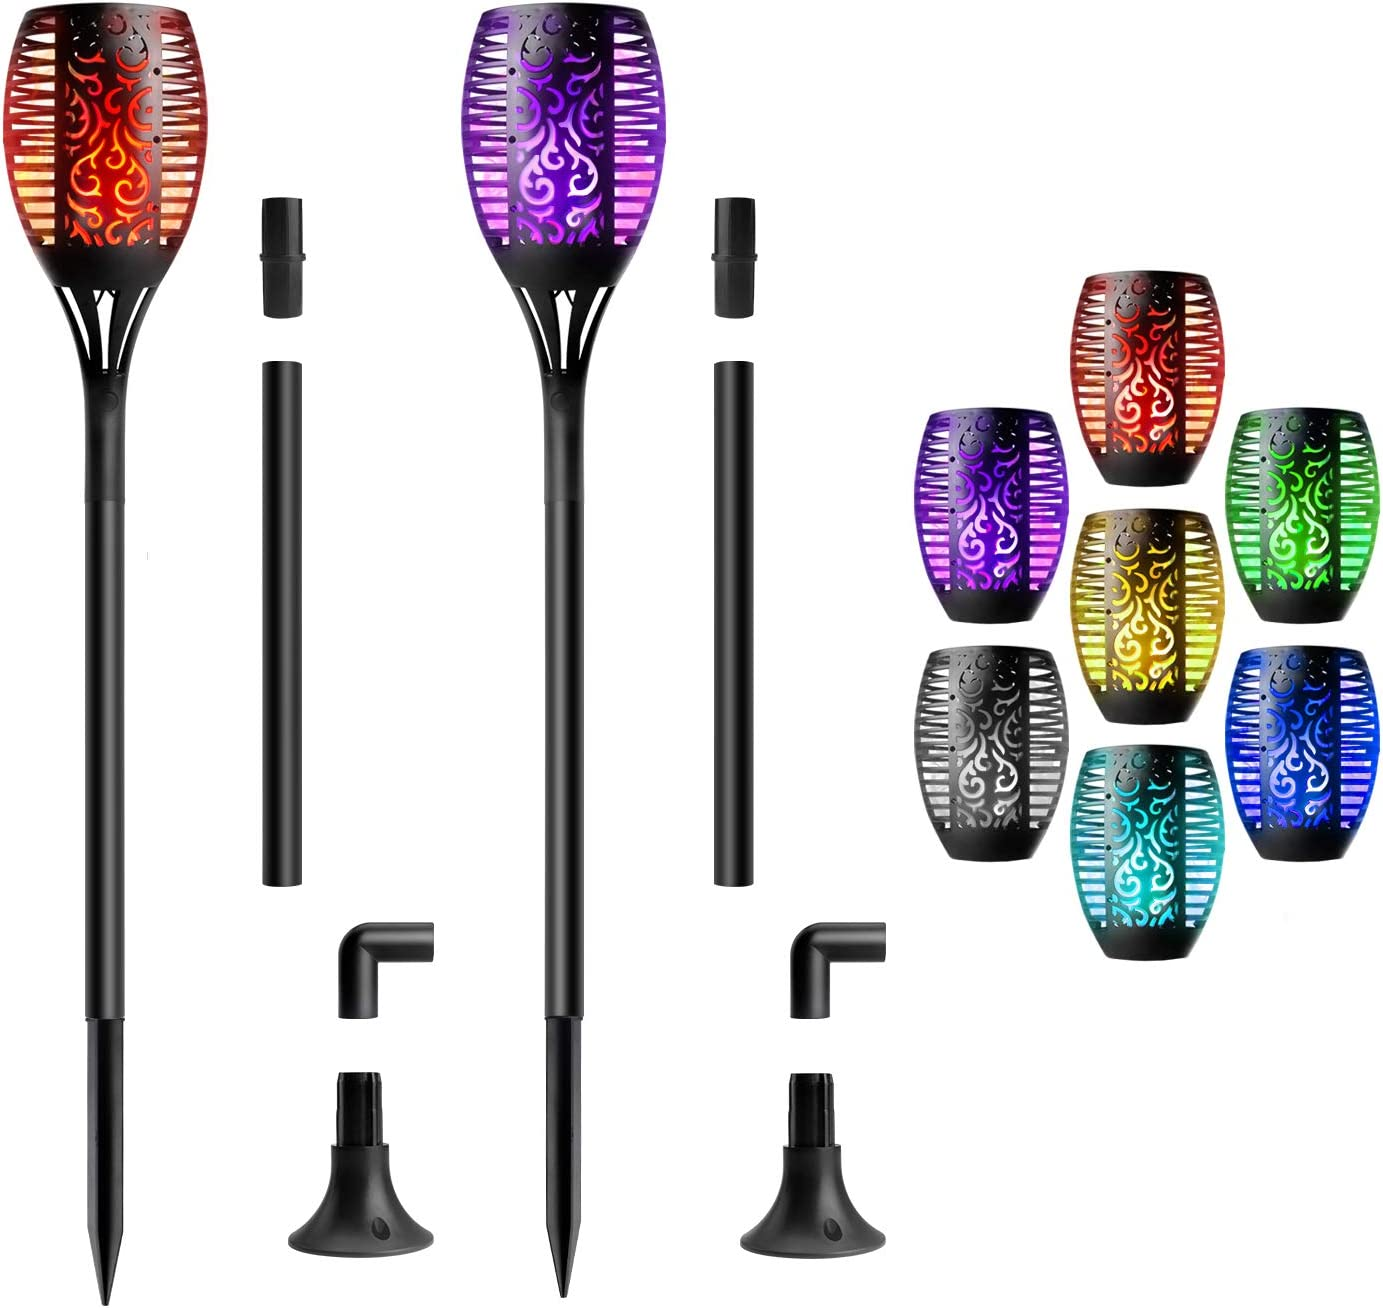 Beinhome 2 Pack Solar Torch Light Garden Flickering Flame Lights 7 Colors Changing Landscape Decoration Lighting for Patio Yard Lawn Walkway Pathway Camping Garden